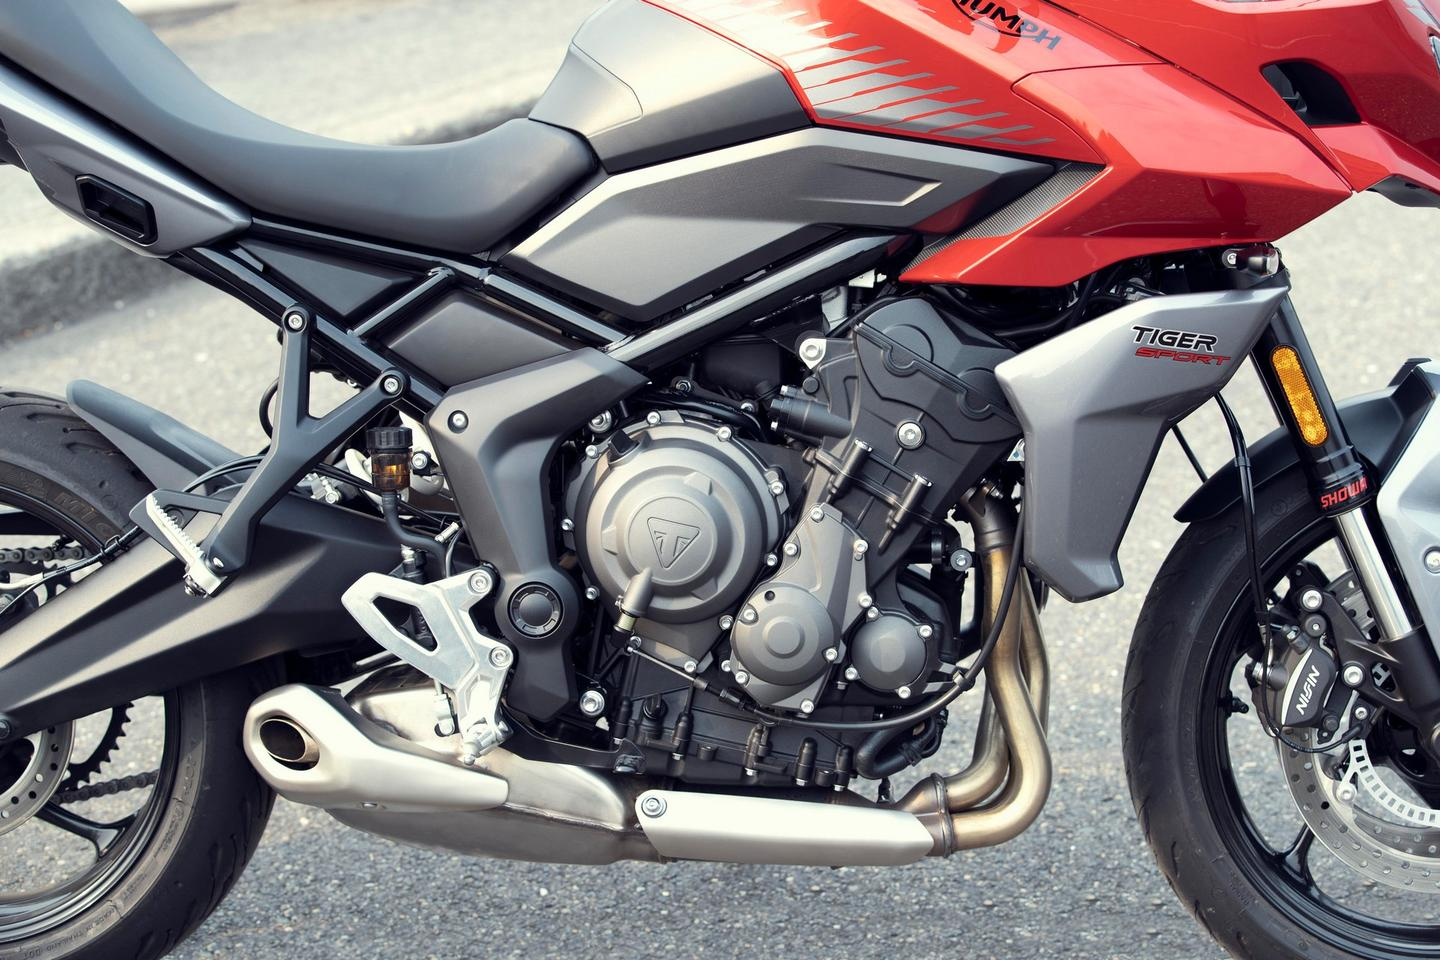 The inline three-cylinder motor of the 2022 Triumph Tiger Sport 660 debuted a few months ago on the Trident 660 naked roadster